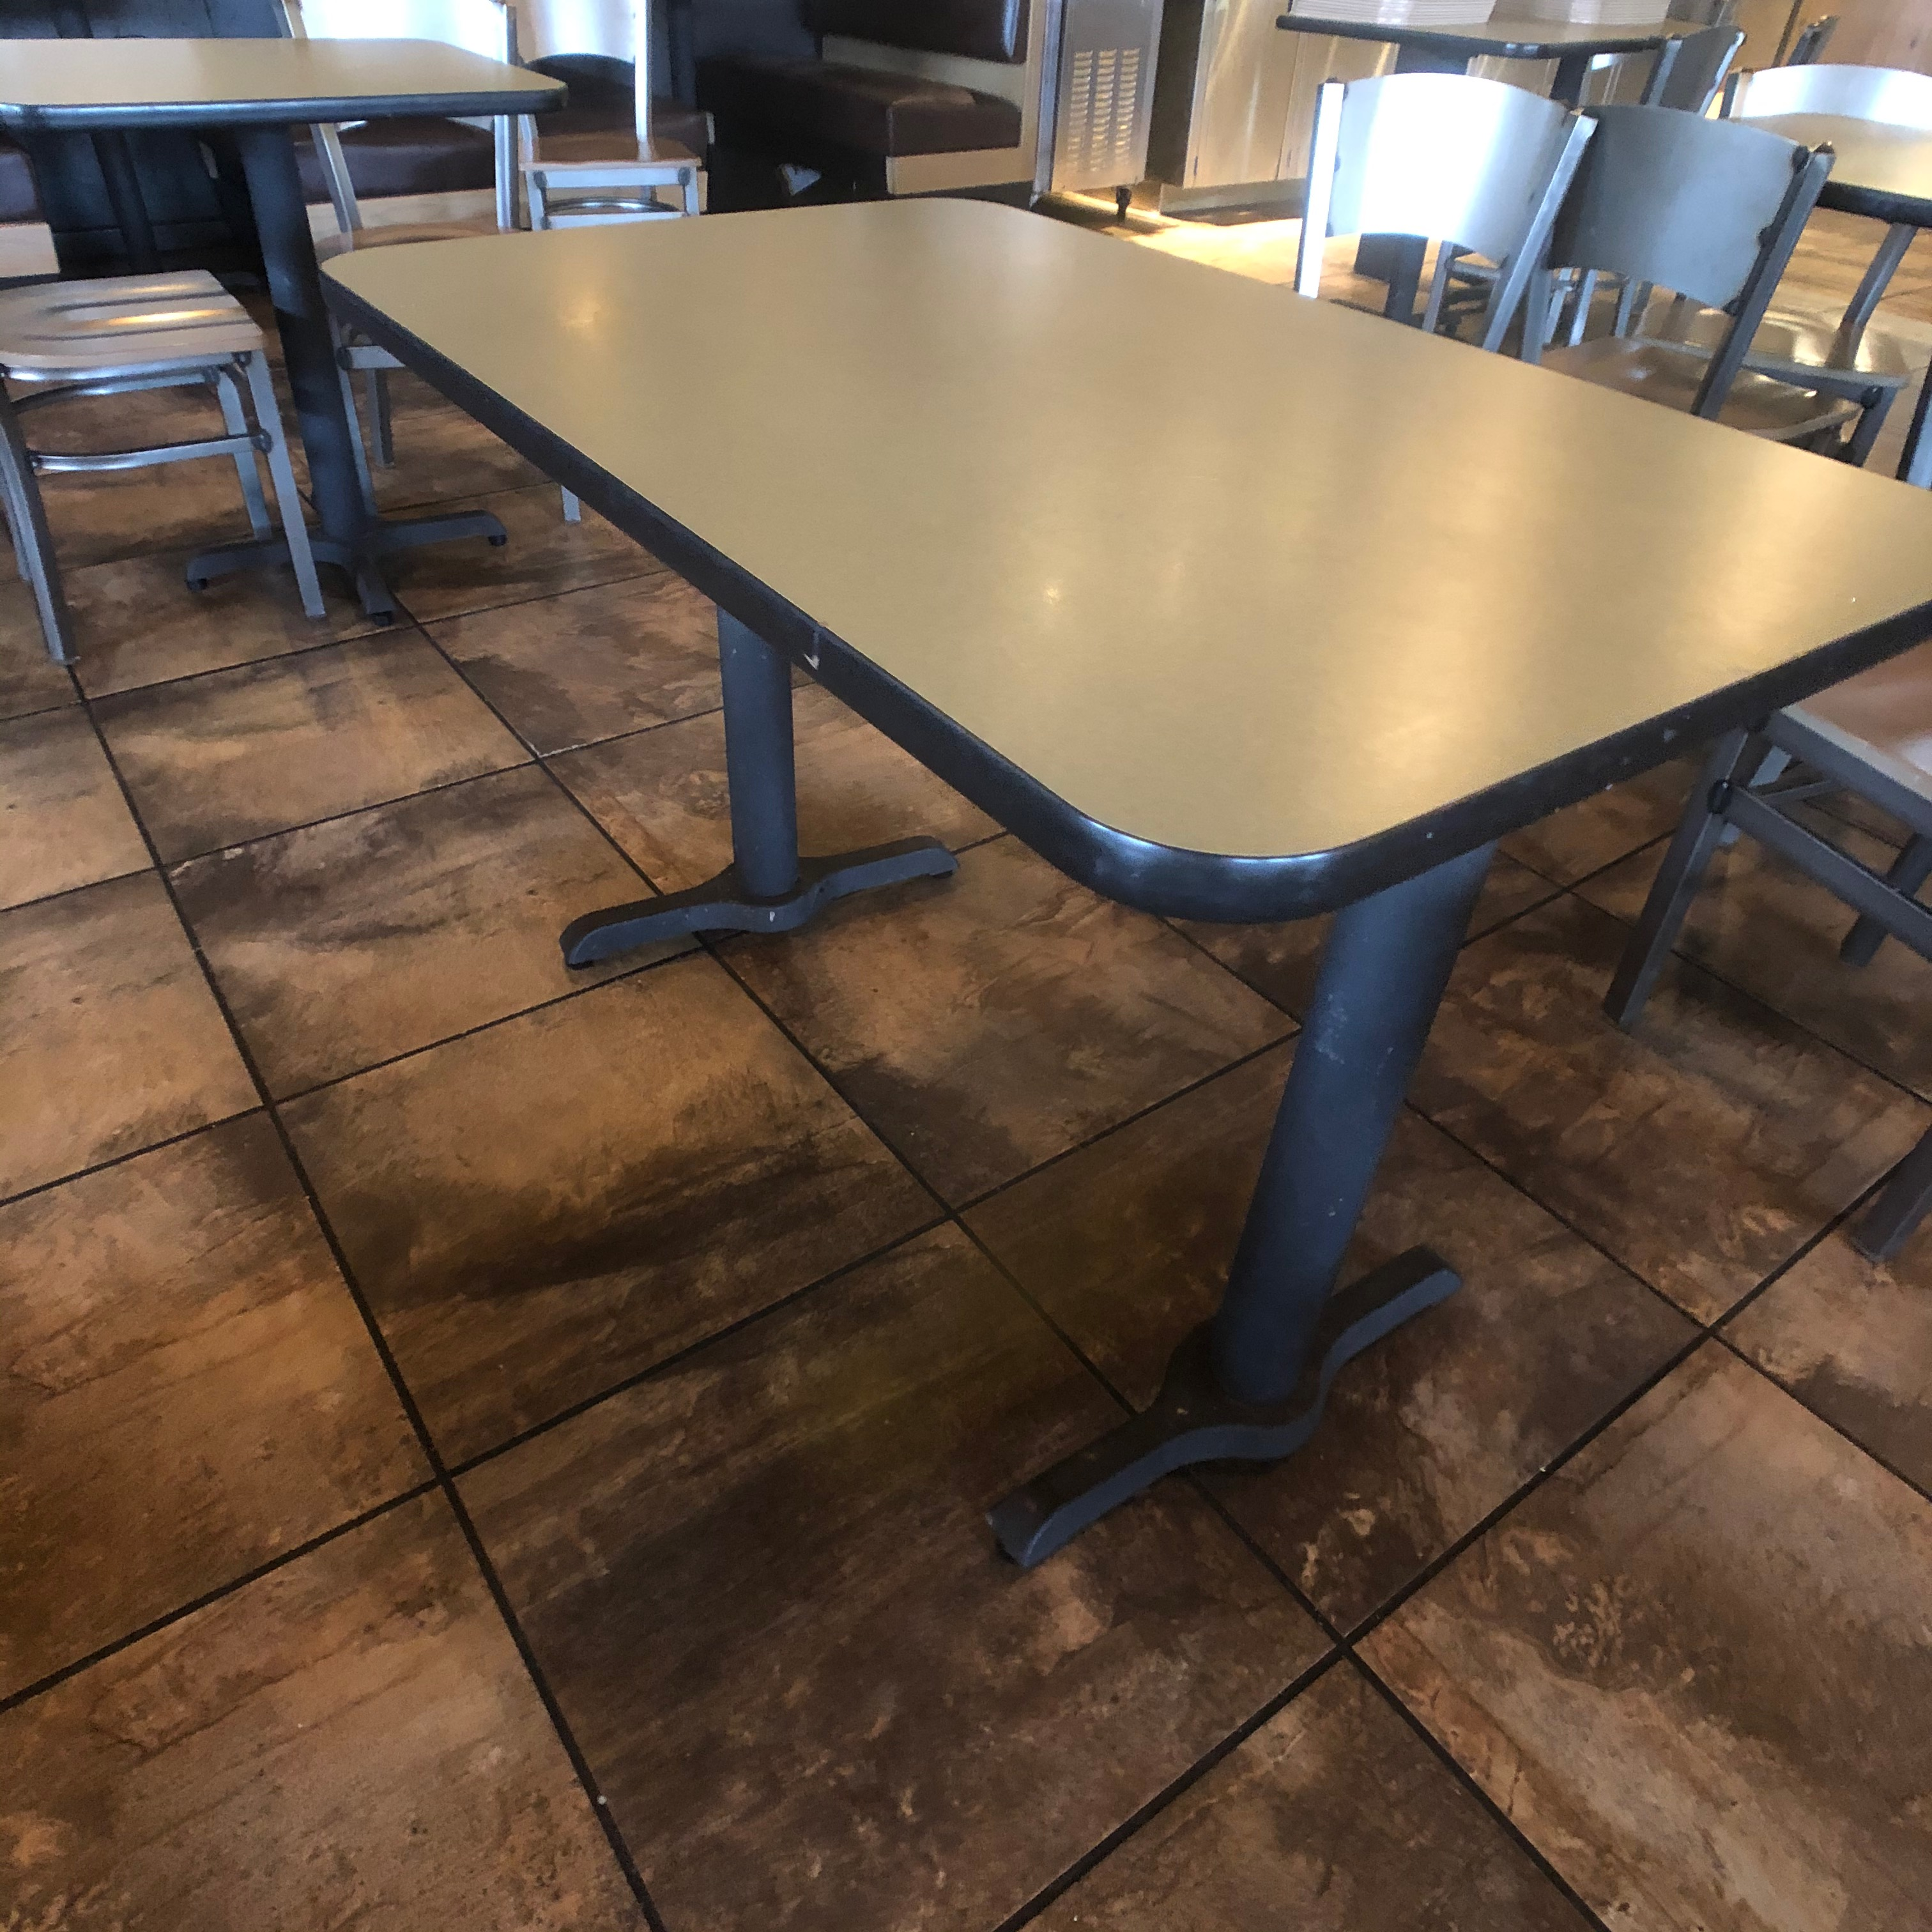 "(6) 4-Person Tables with (24) Walsh Simmons Seating Chairs, Approx. 44"" L x 28"" W"